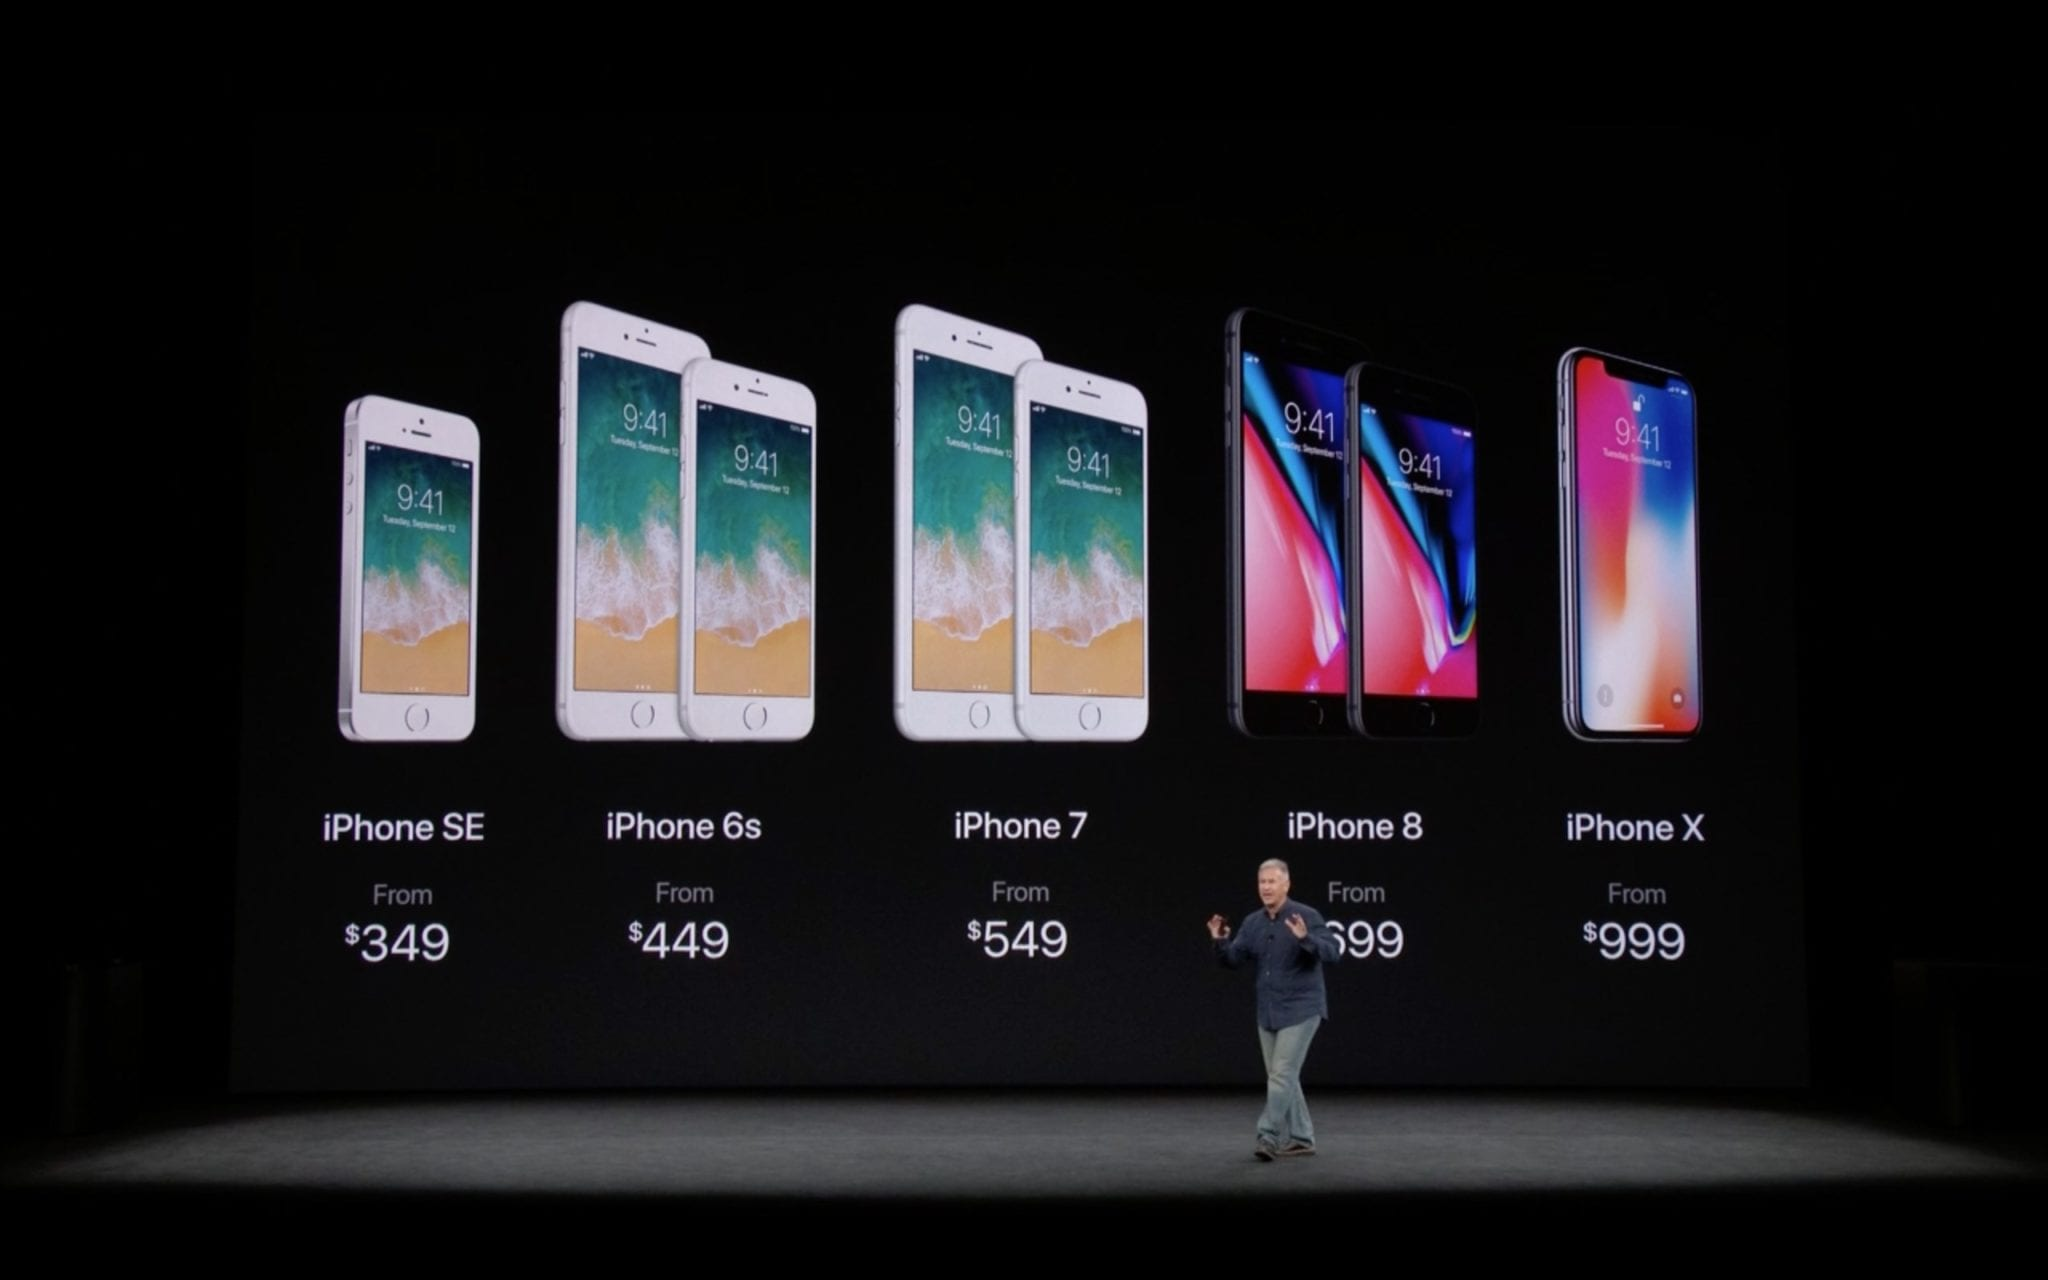 iphone lineup 2017 apple event - iPhone X vs. iPhone 8 – porovnanie a ceny u nás